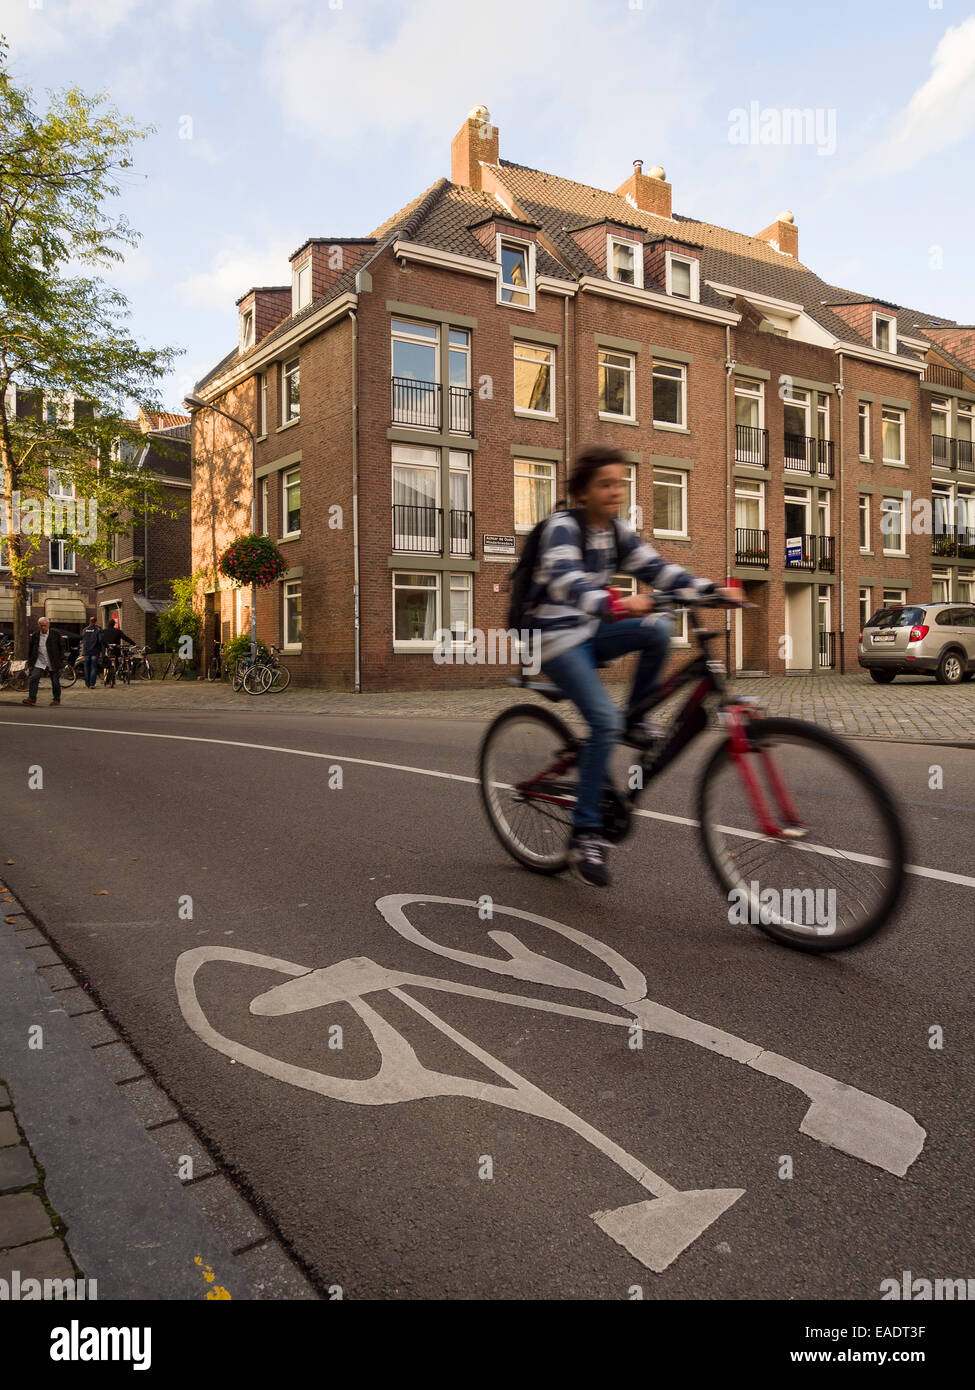 Man riding his bicycle on a bike lane in Maastricht, The Netherlands, Europe - Stock Image